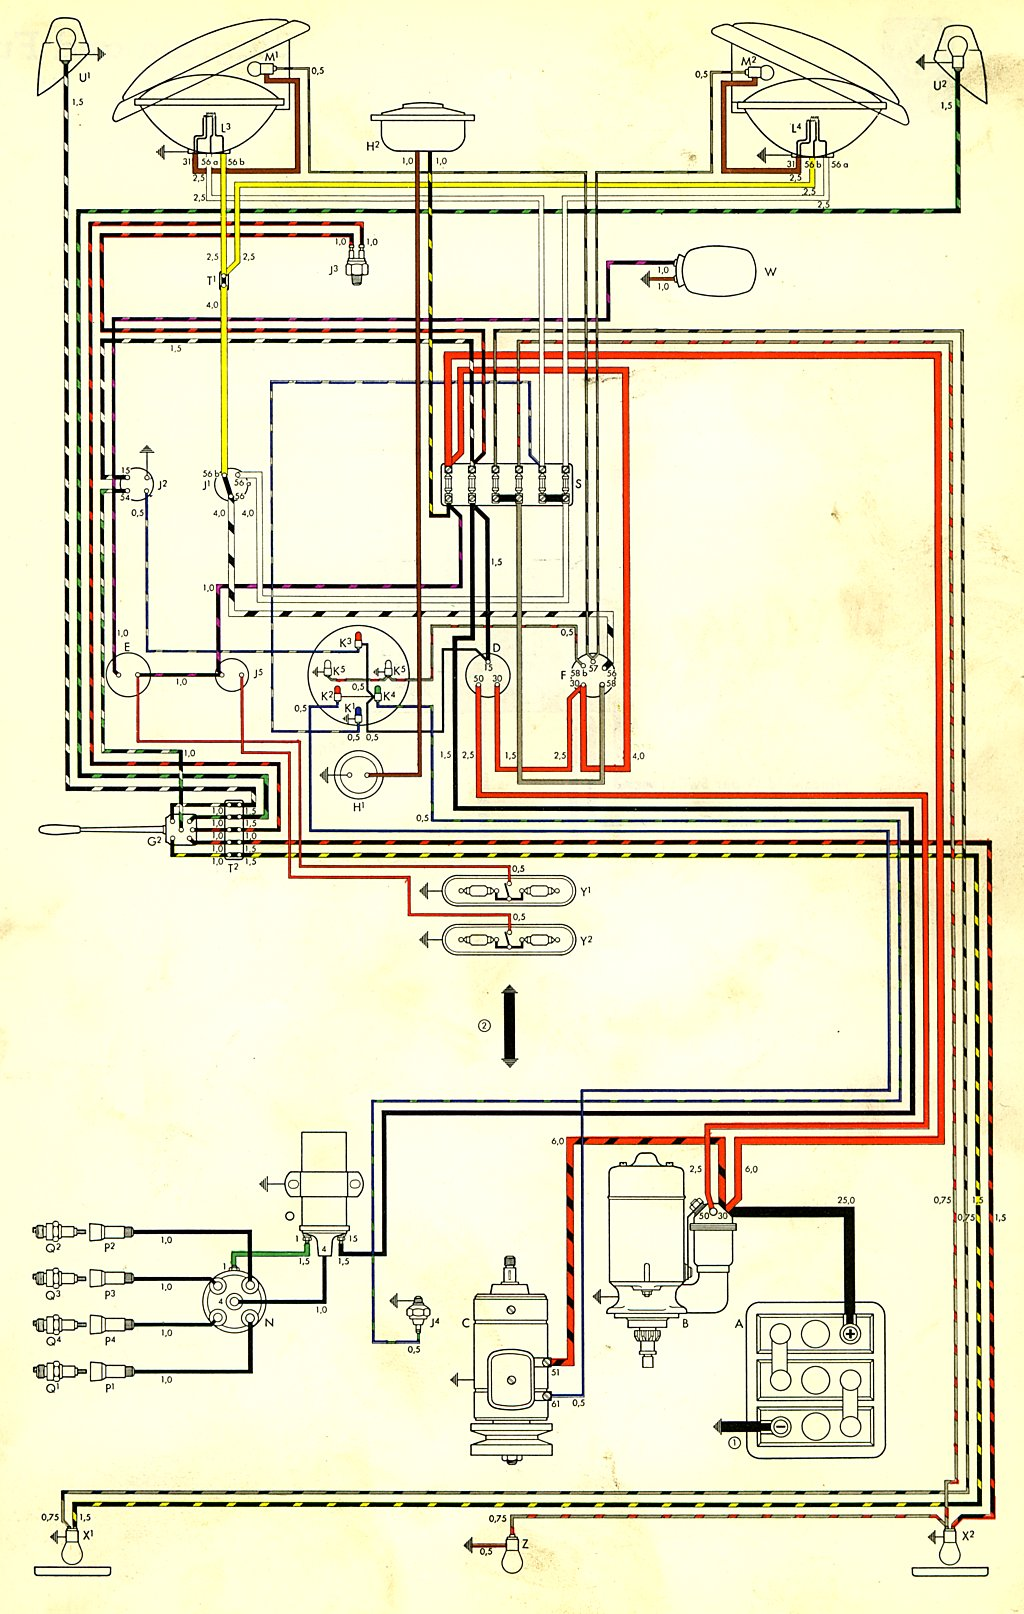 1963 Vw Bus Wiring Diagram Ask Answer 1968 F600 Thesamba Com Type 2 Diagrams Rh 1978